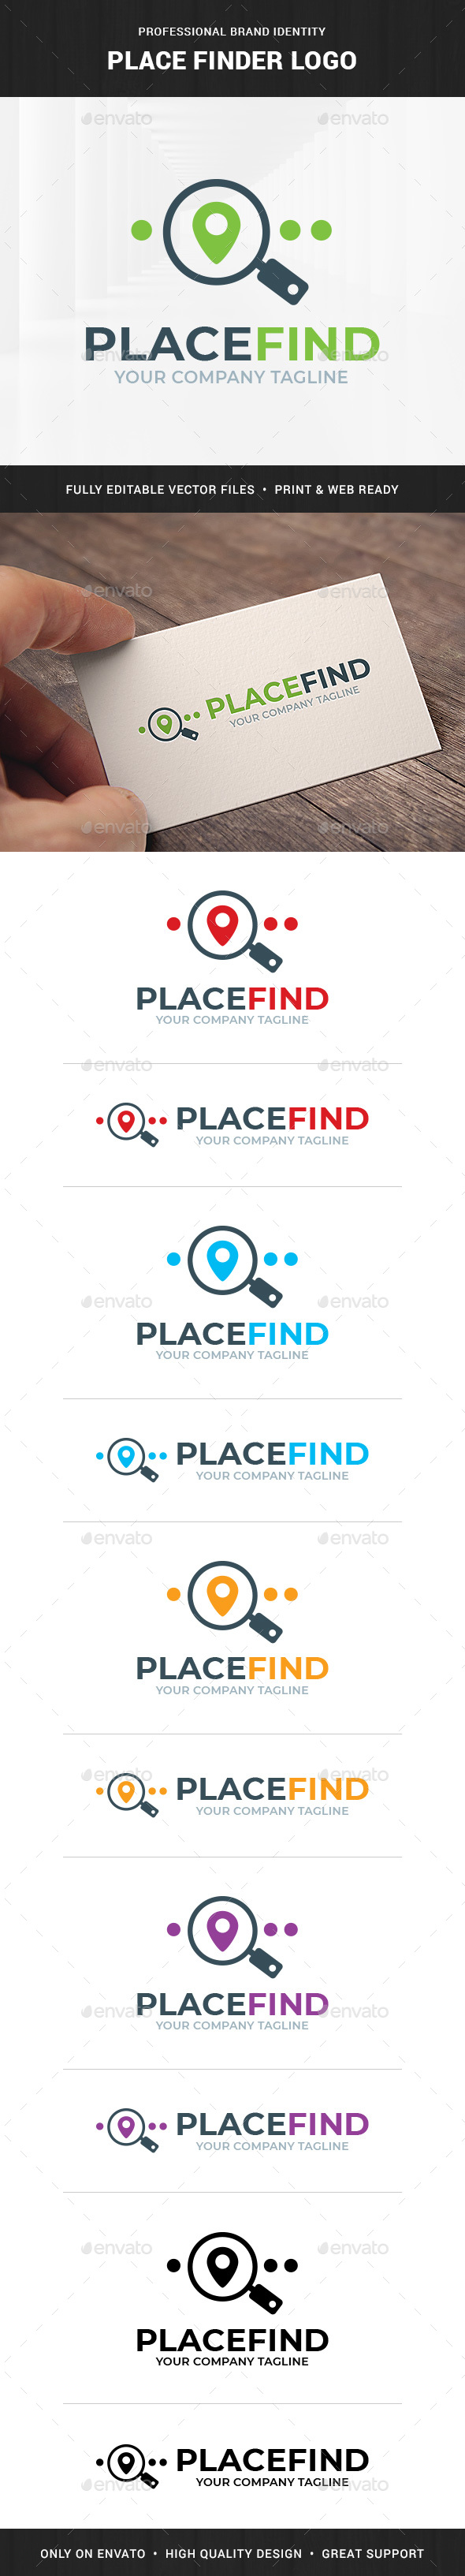 Place Finder Logo Template